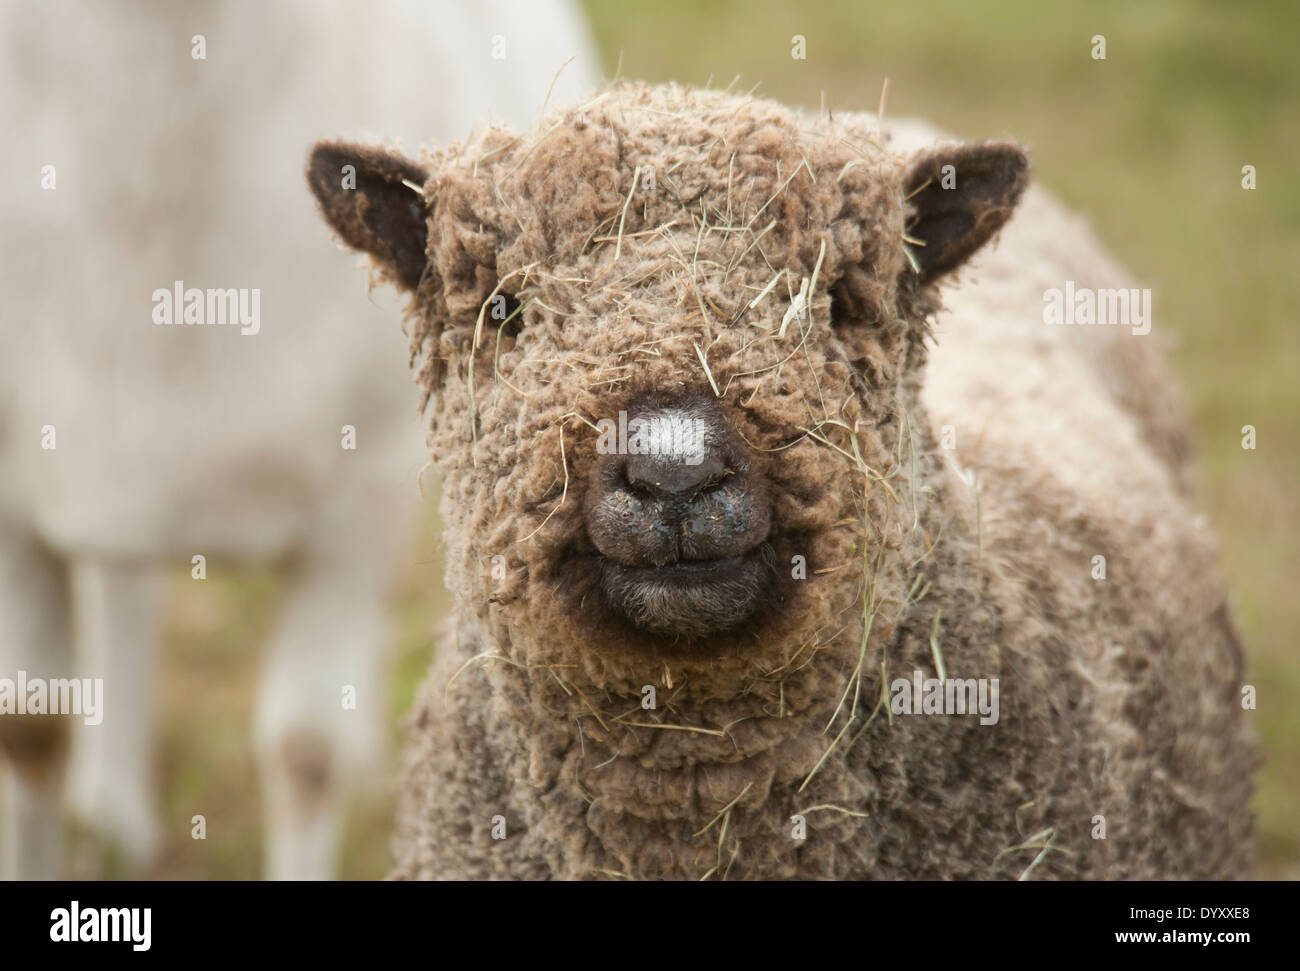 Miniature Baby Doll sheep with straw on face - Stock Image